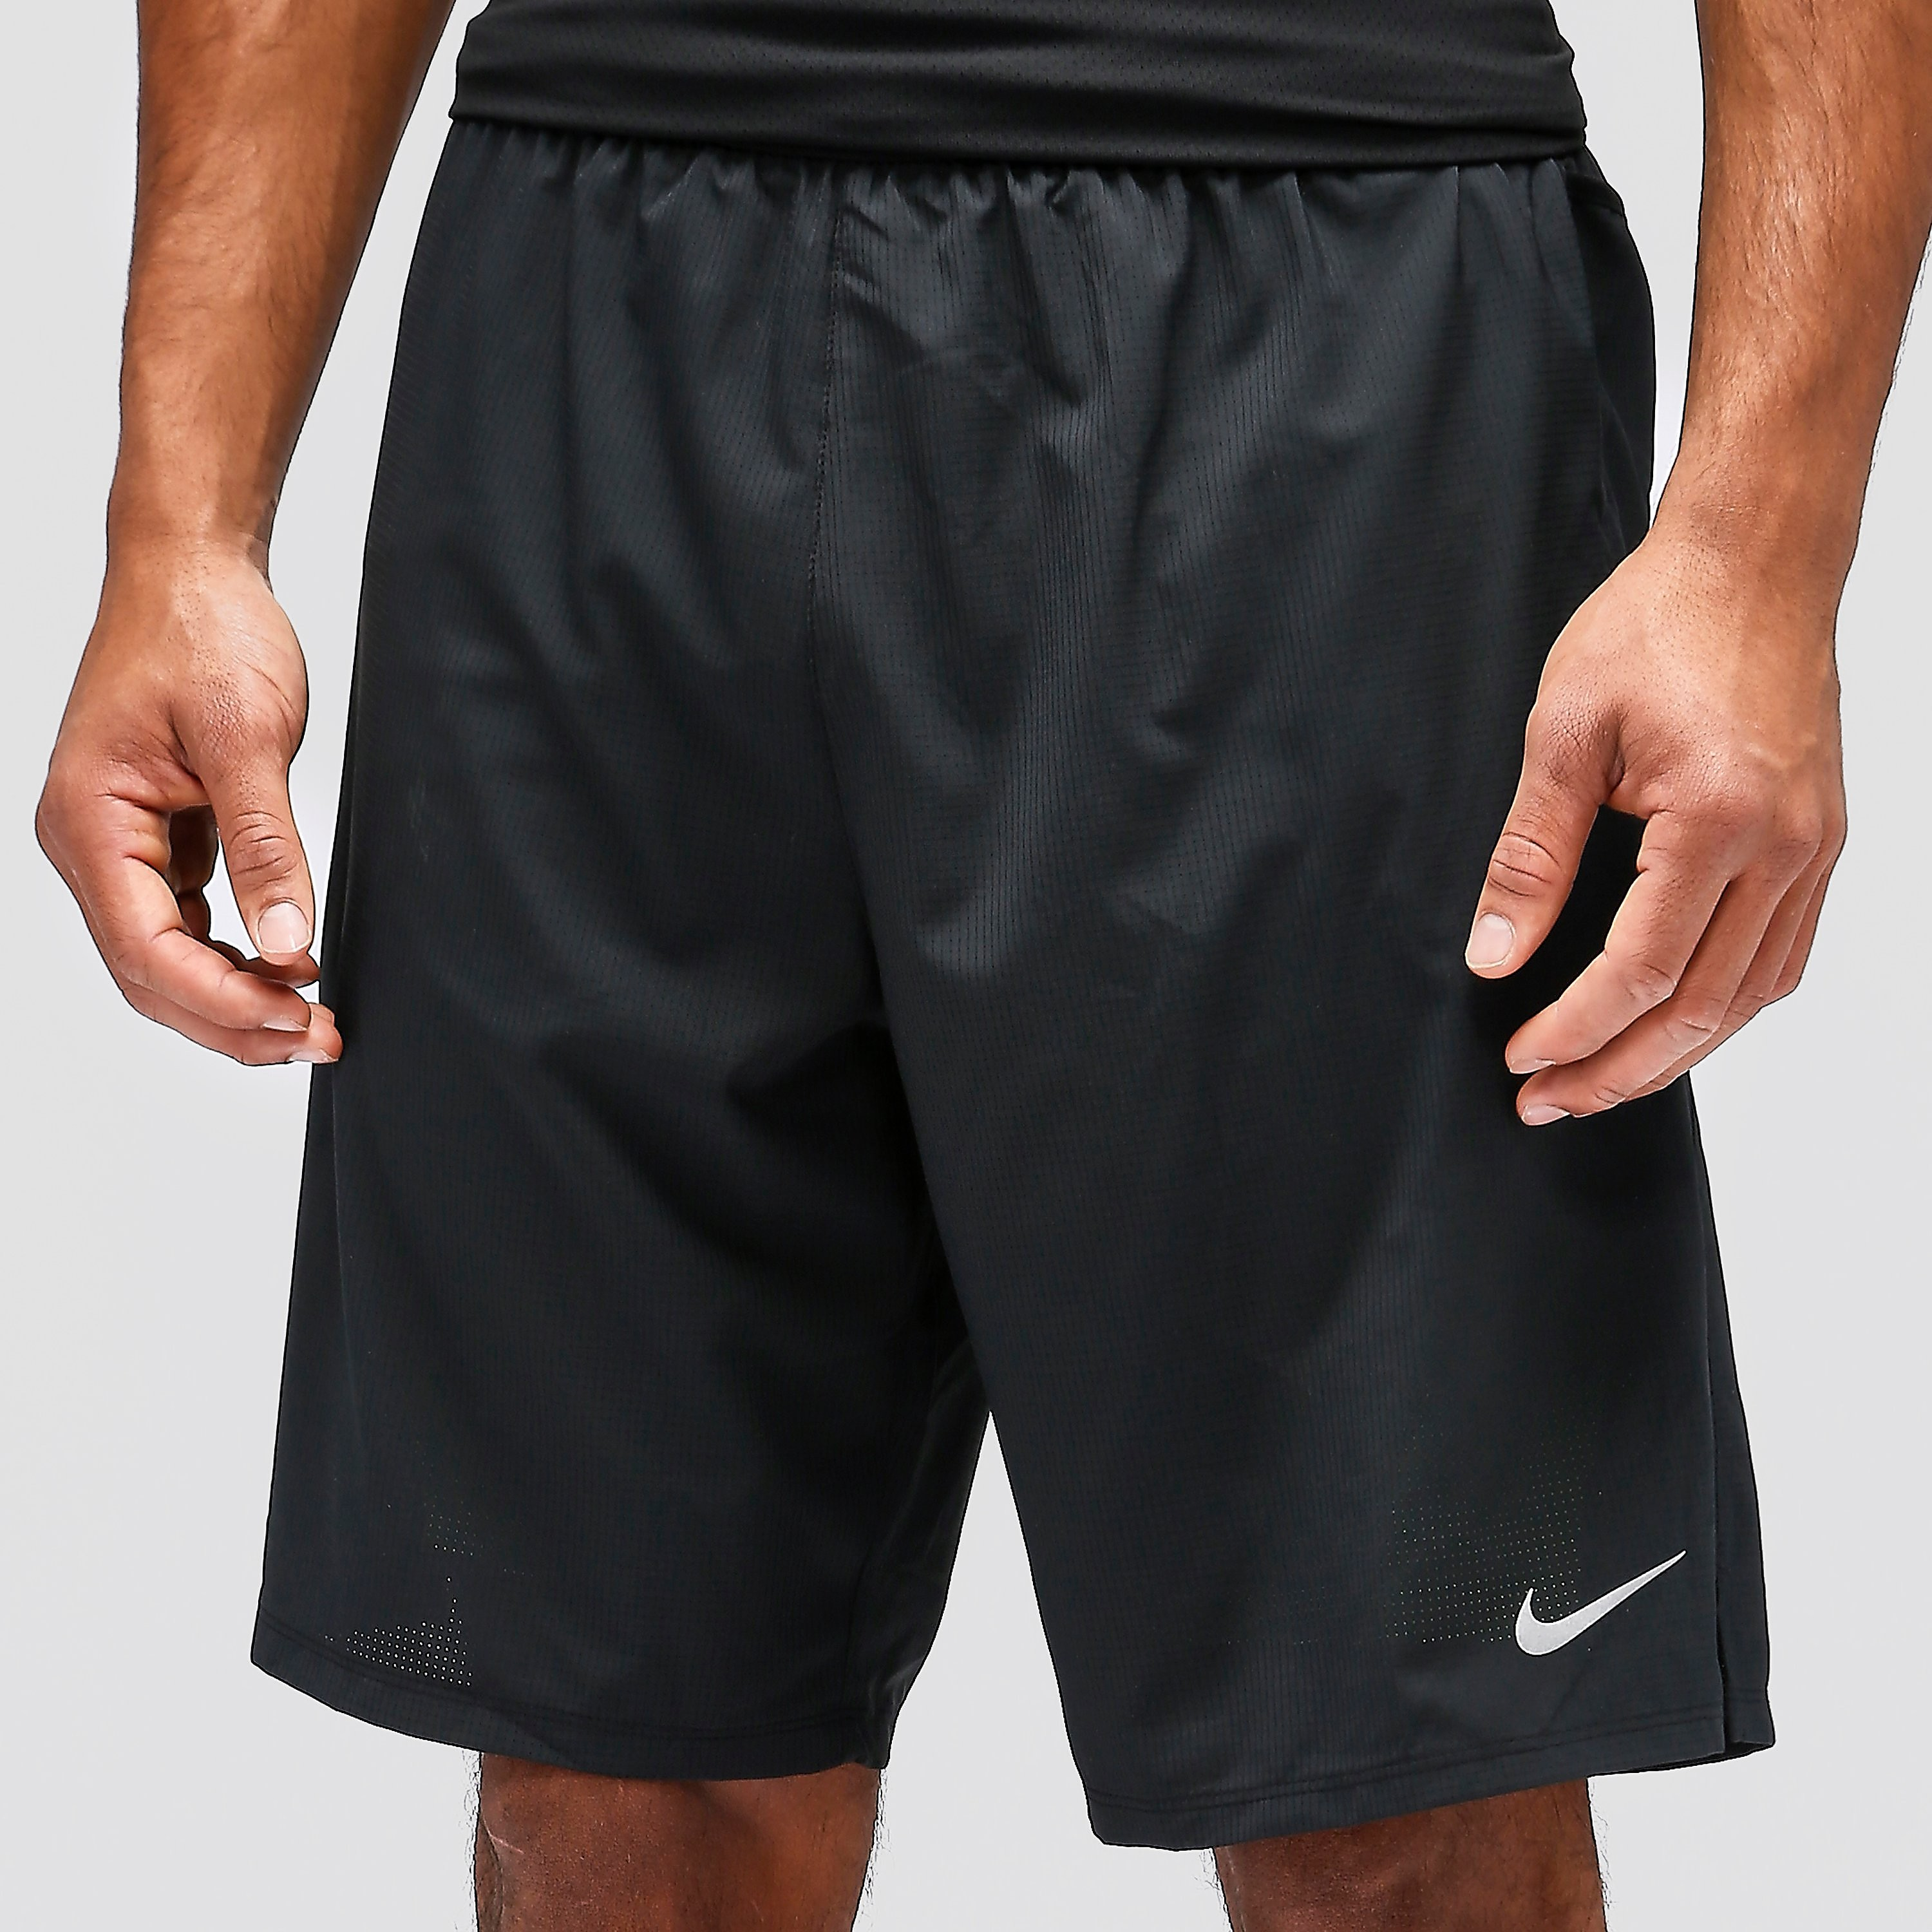 Nike Men's 9-Inch Pursuit 2-in-1 Shorts